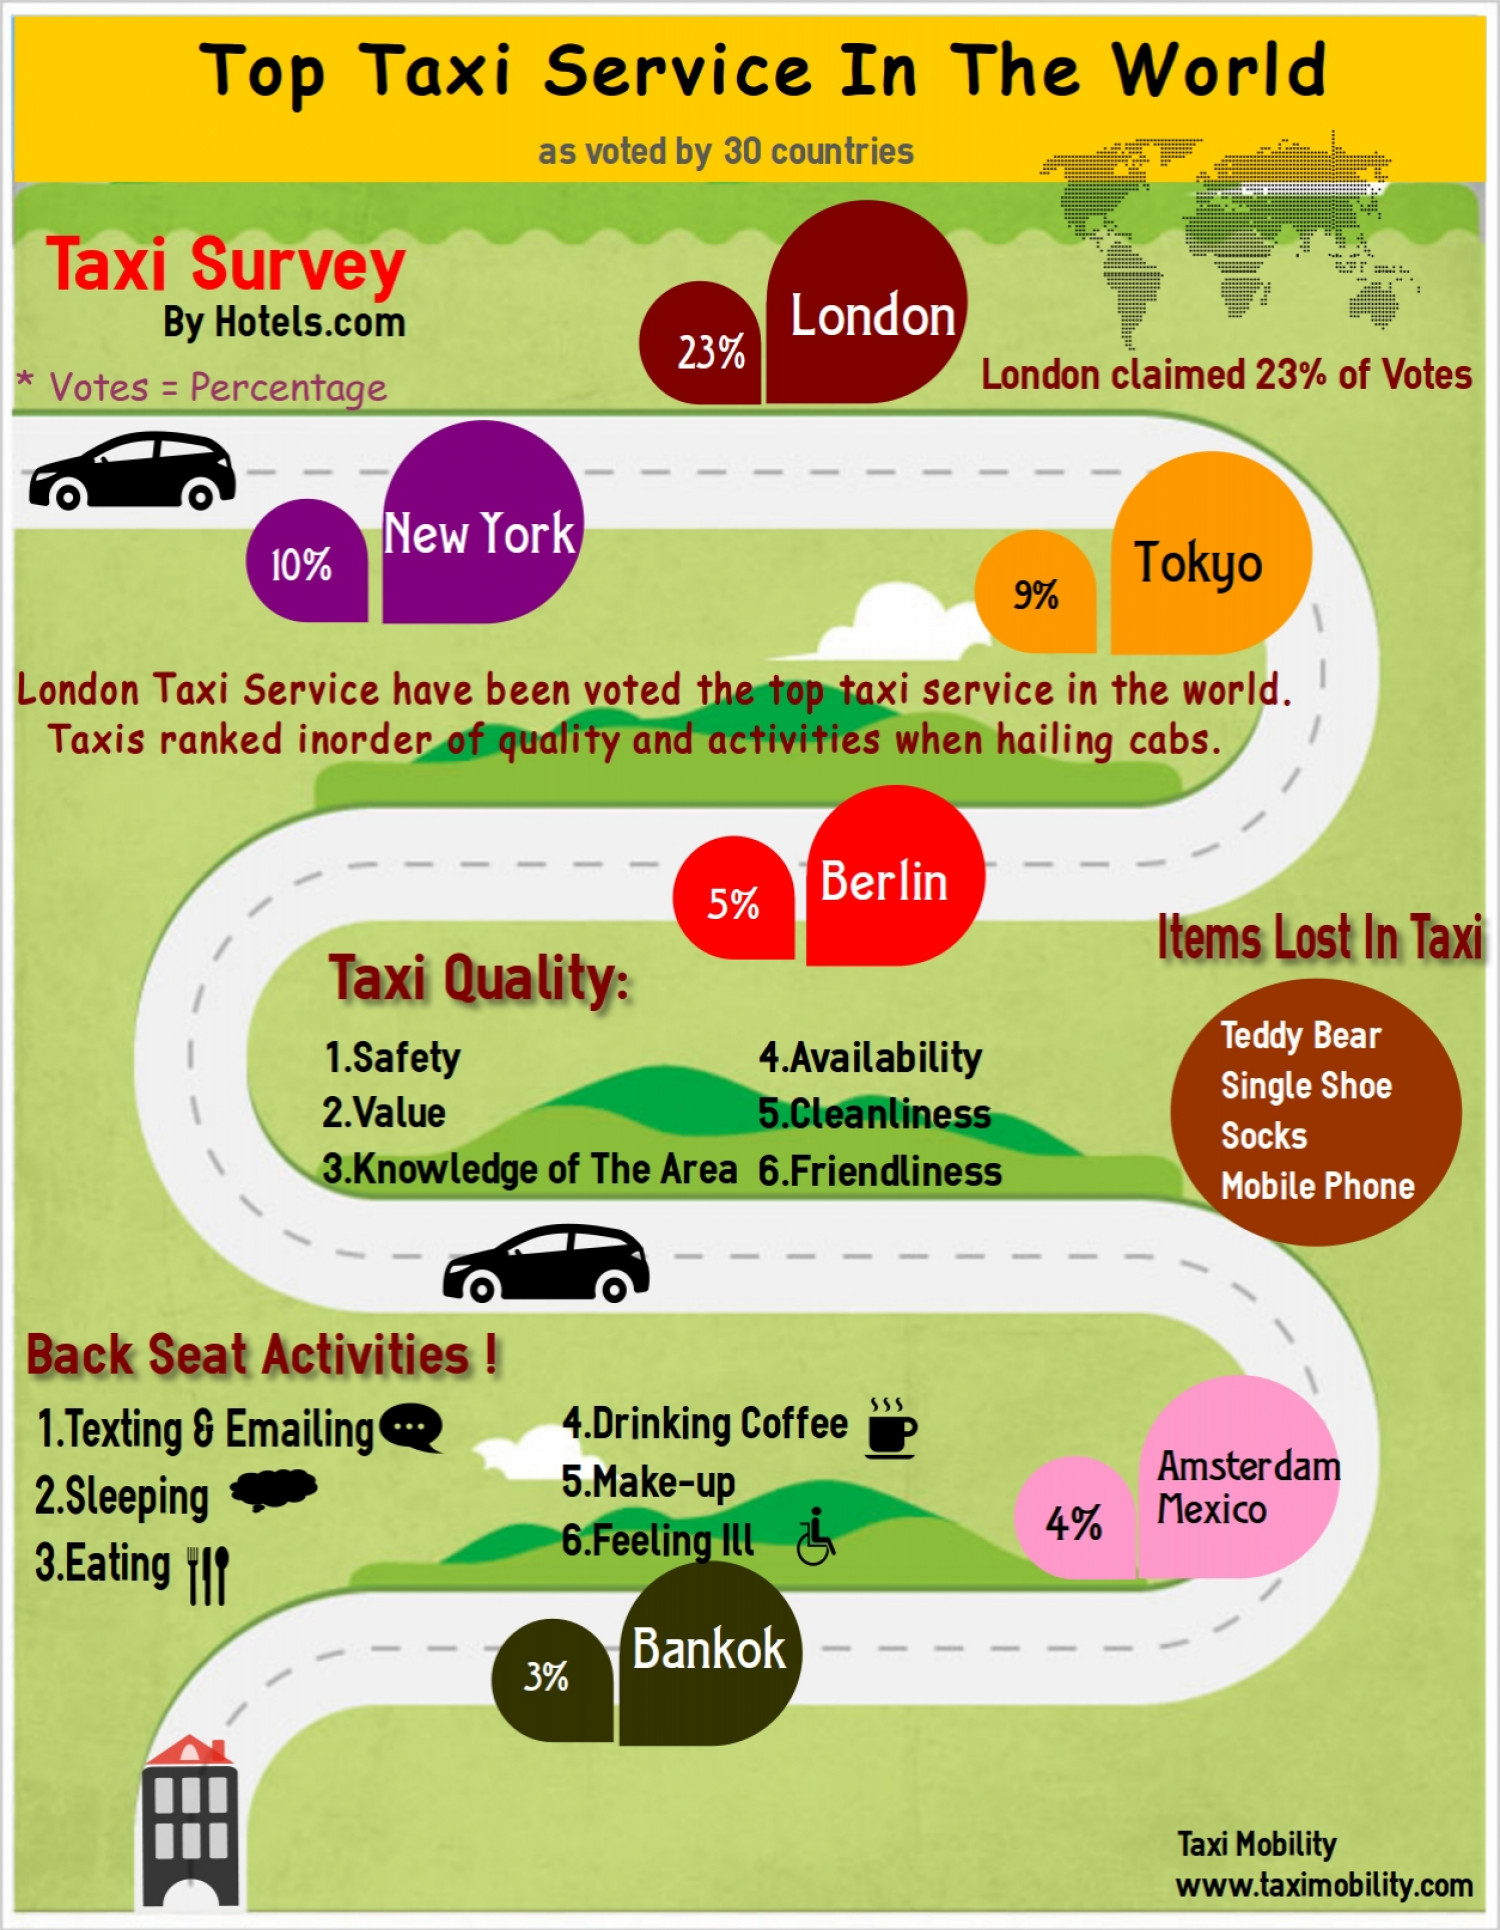 Top Taxi Service in The World Infographic